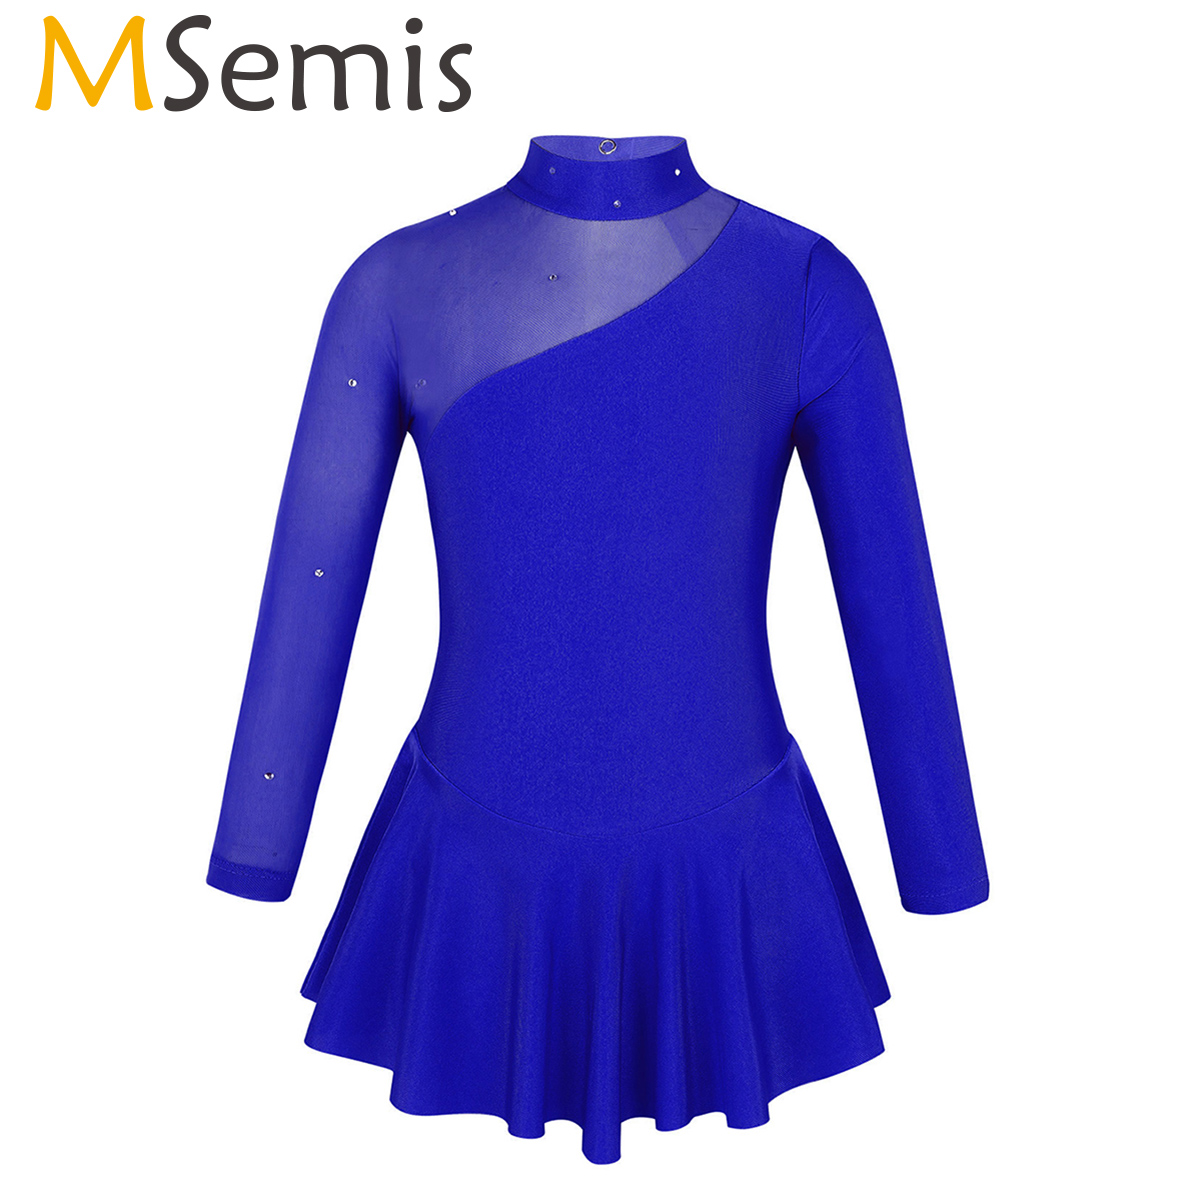 MSemis Girls Figure Ice Skating Competition Dress Long Sleeves Tulle Splice Cutouts Kid Professional Rhythmic Gymnastics Leotard